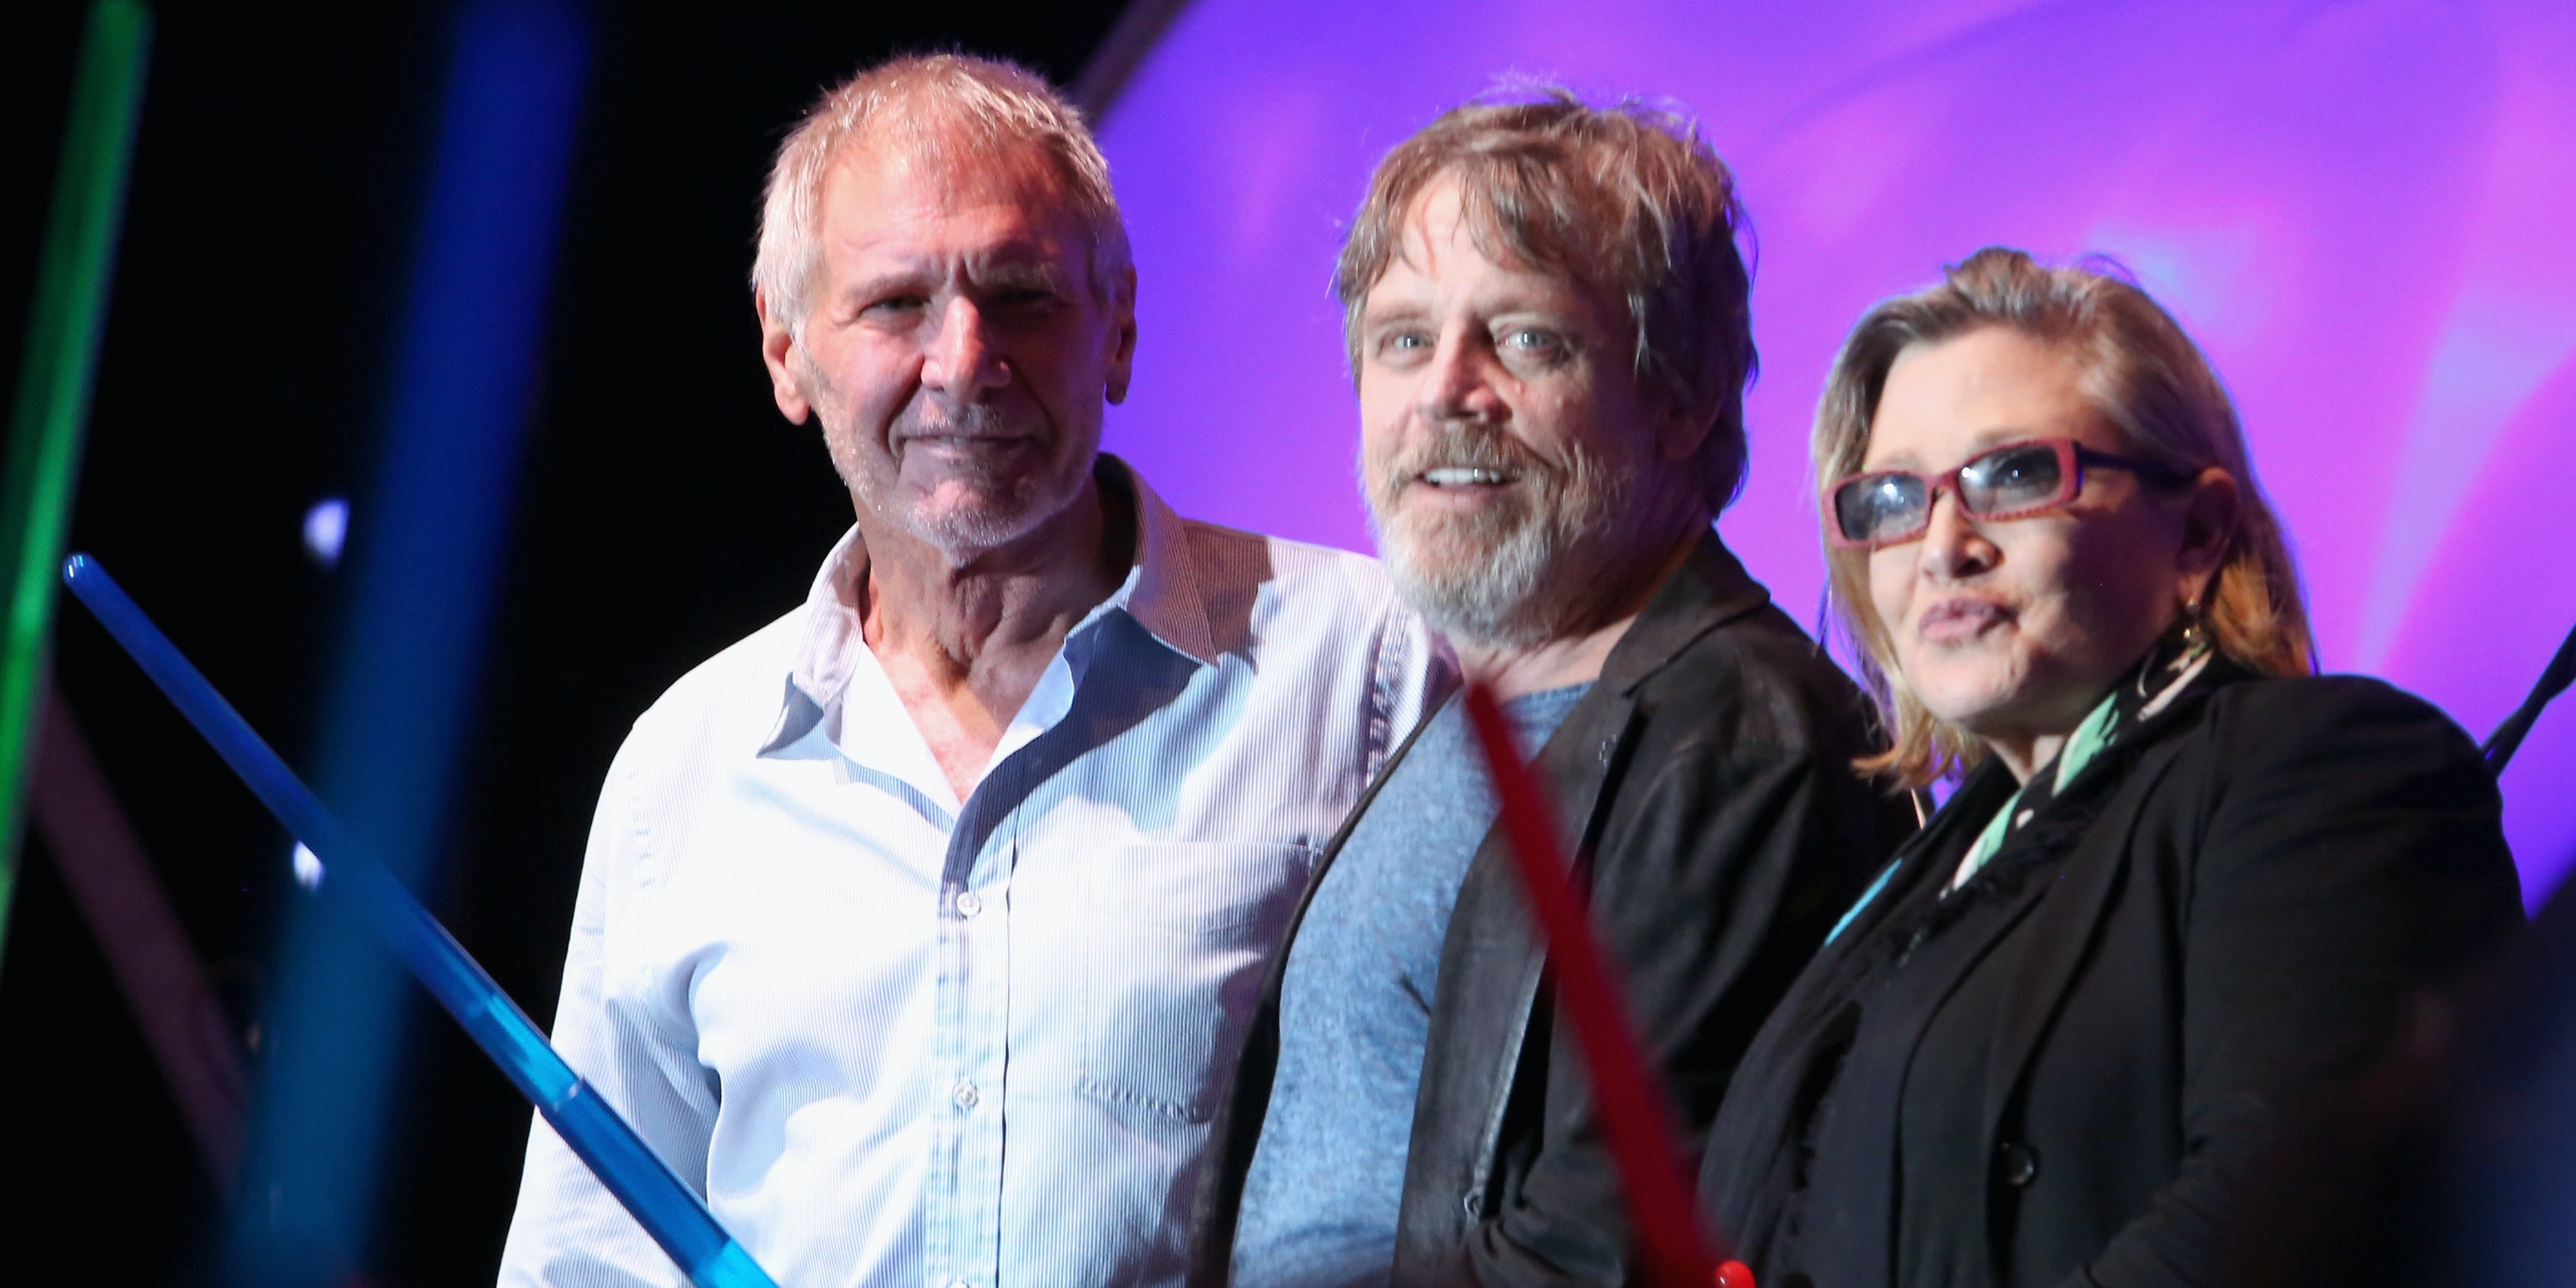 Carrie Fisher with her Star Wars co-stars Harrison Ford and Mark Hamill.